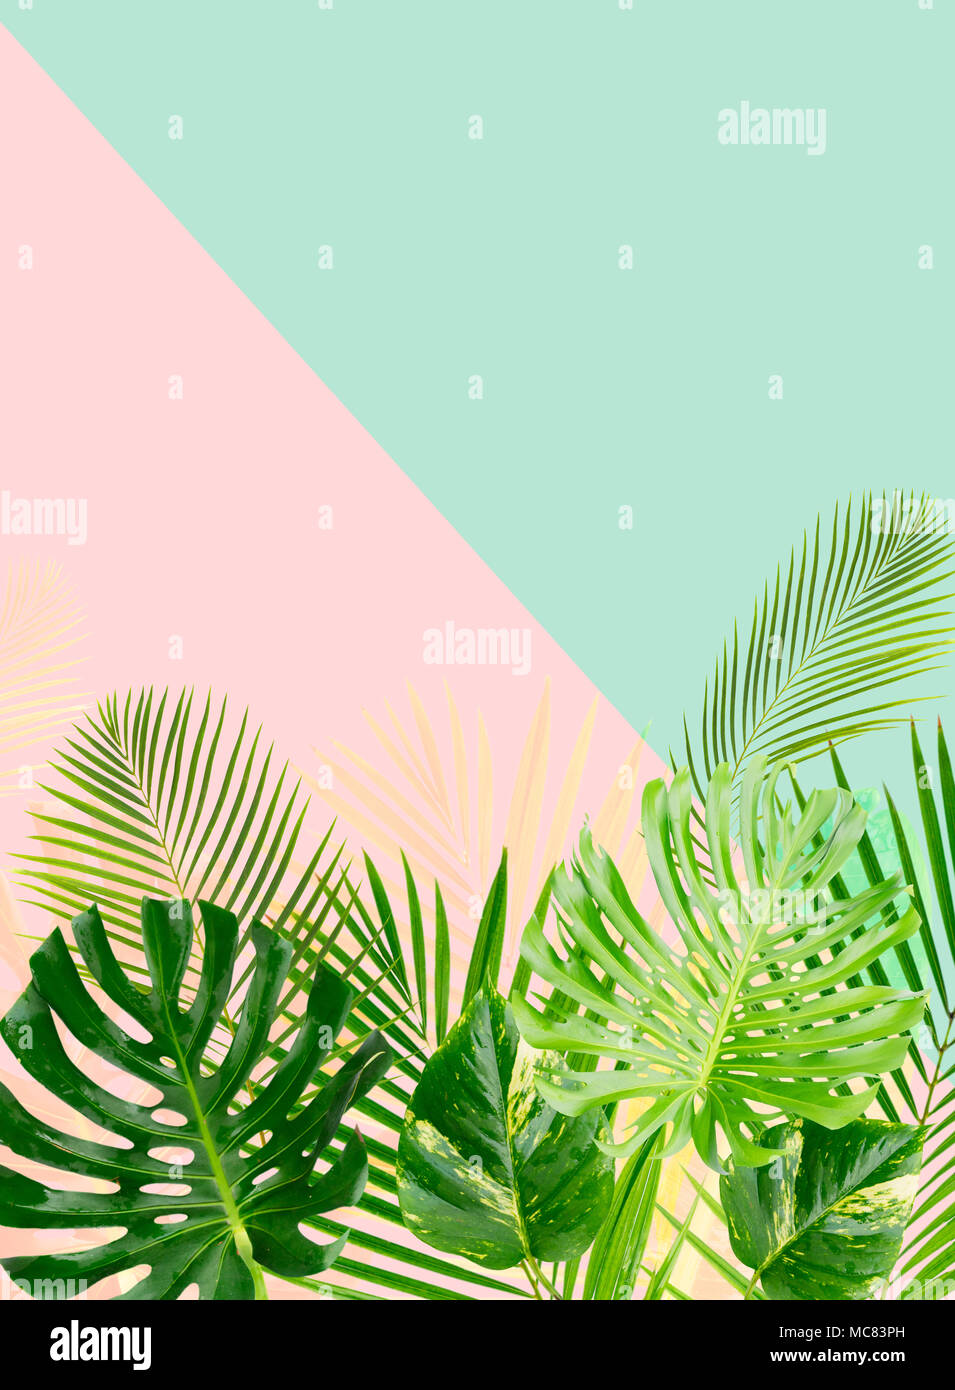 Tropical Green Leaves On Blue And Pink Background With Copy Space Stock Photo Alamy Coconut palm, monstera, fan palm, rhapis. https www alamy com tropical green leaves on blue and pink background with copy space image179658153 html